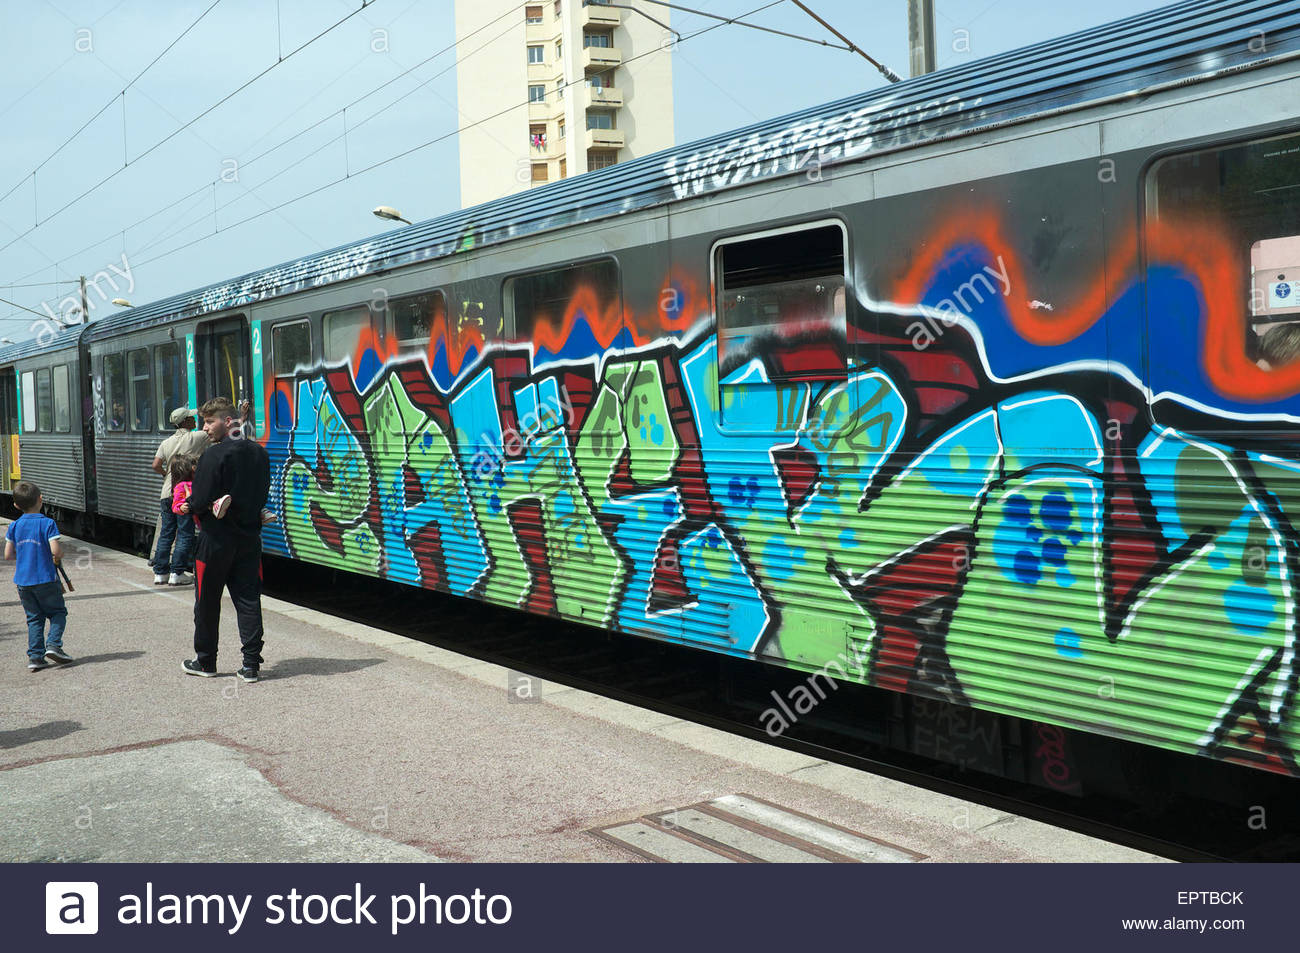 Graffiti Train Stock Photos Amp Graffiti Train Stock Images